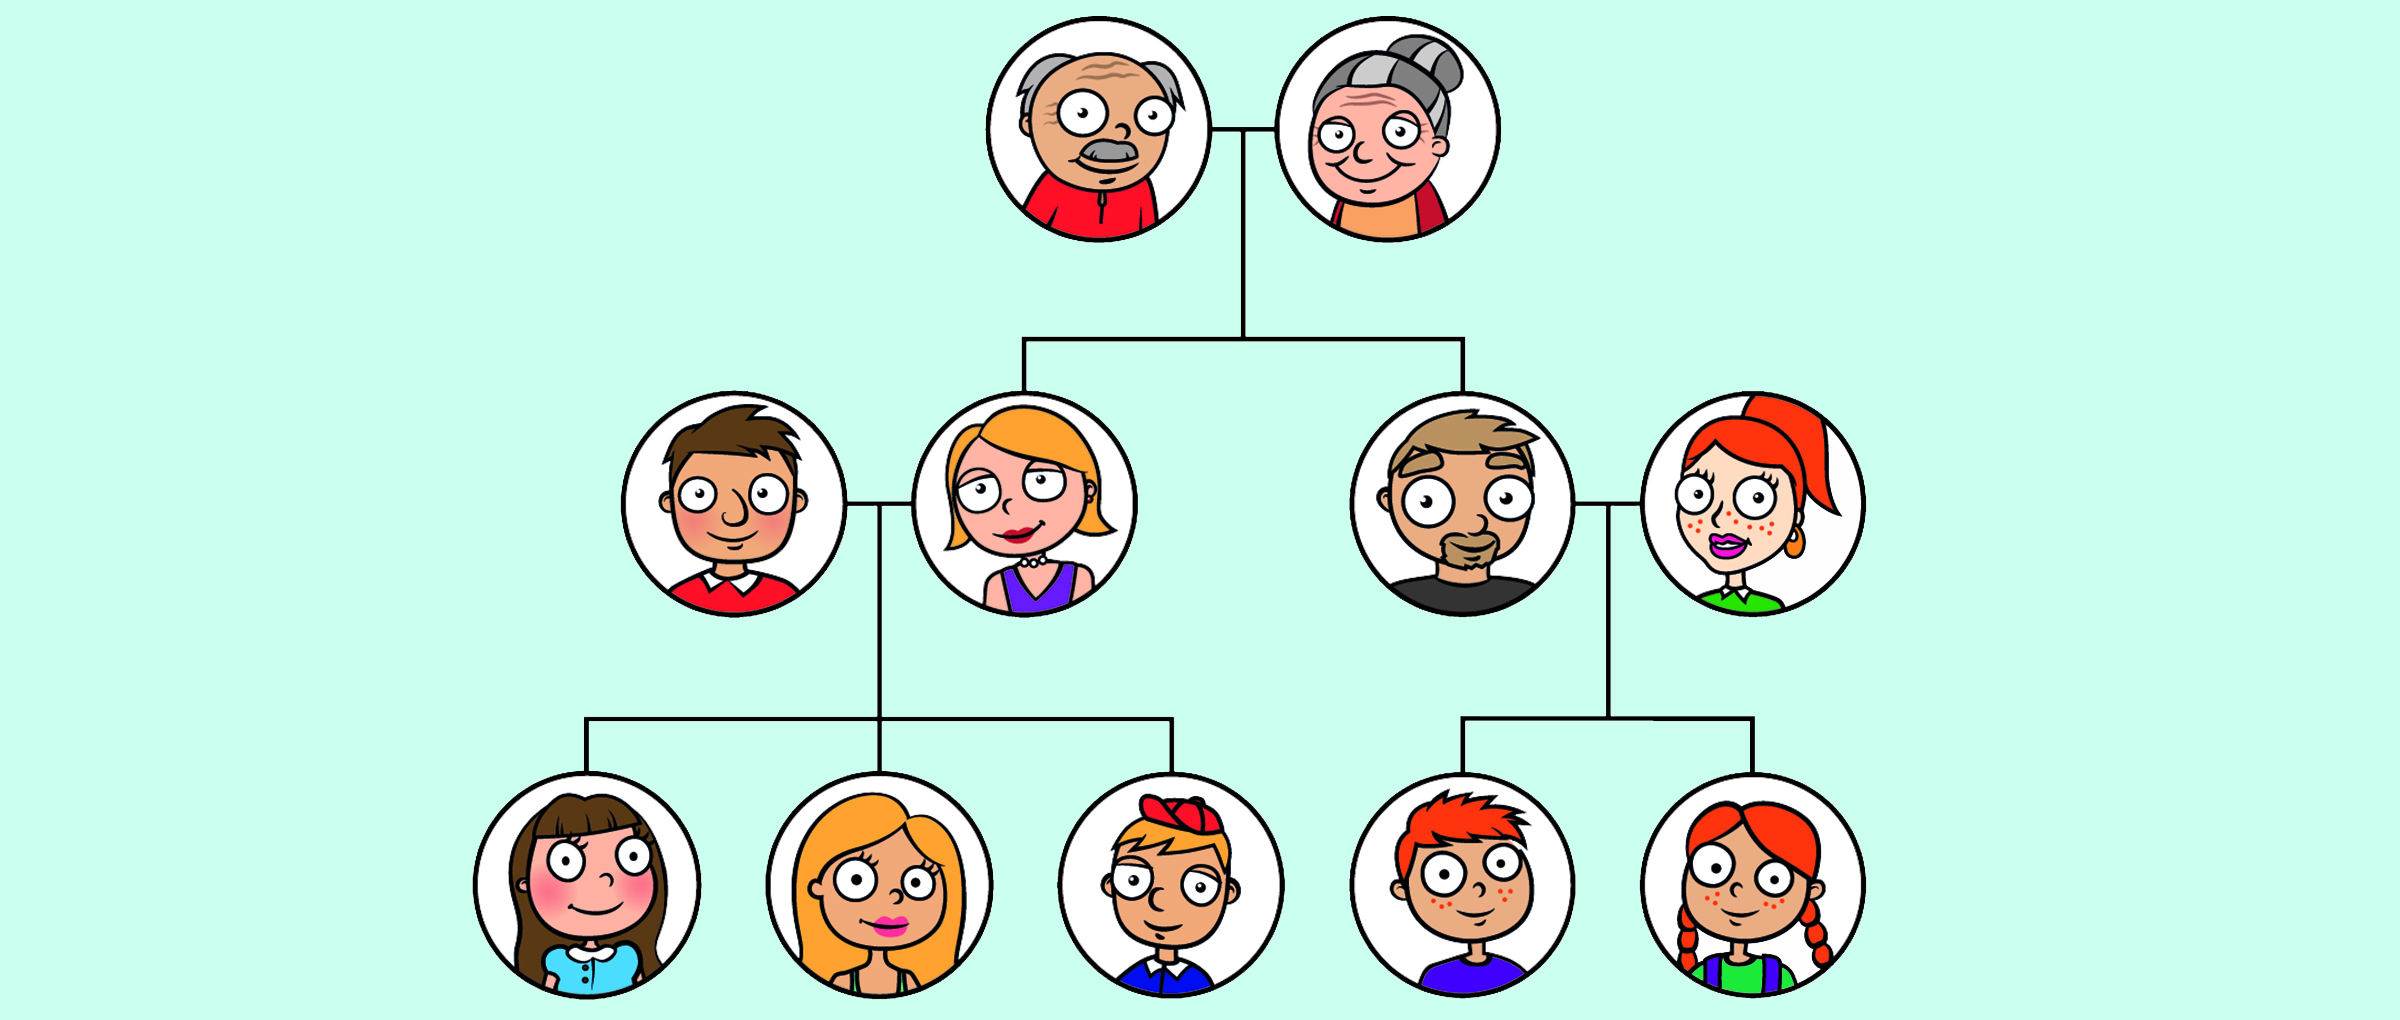 Family Tree 2 on arbol genealogico